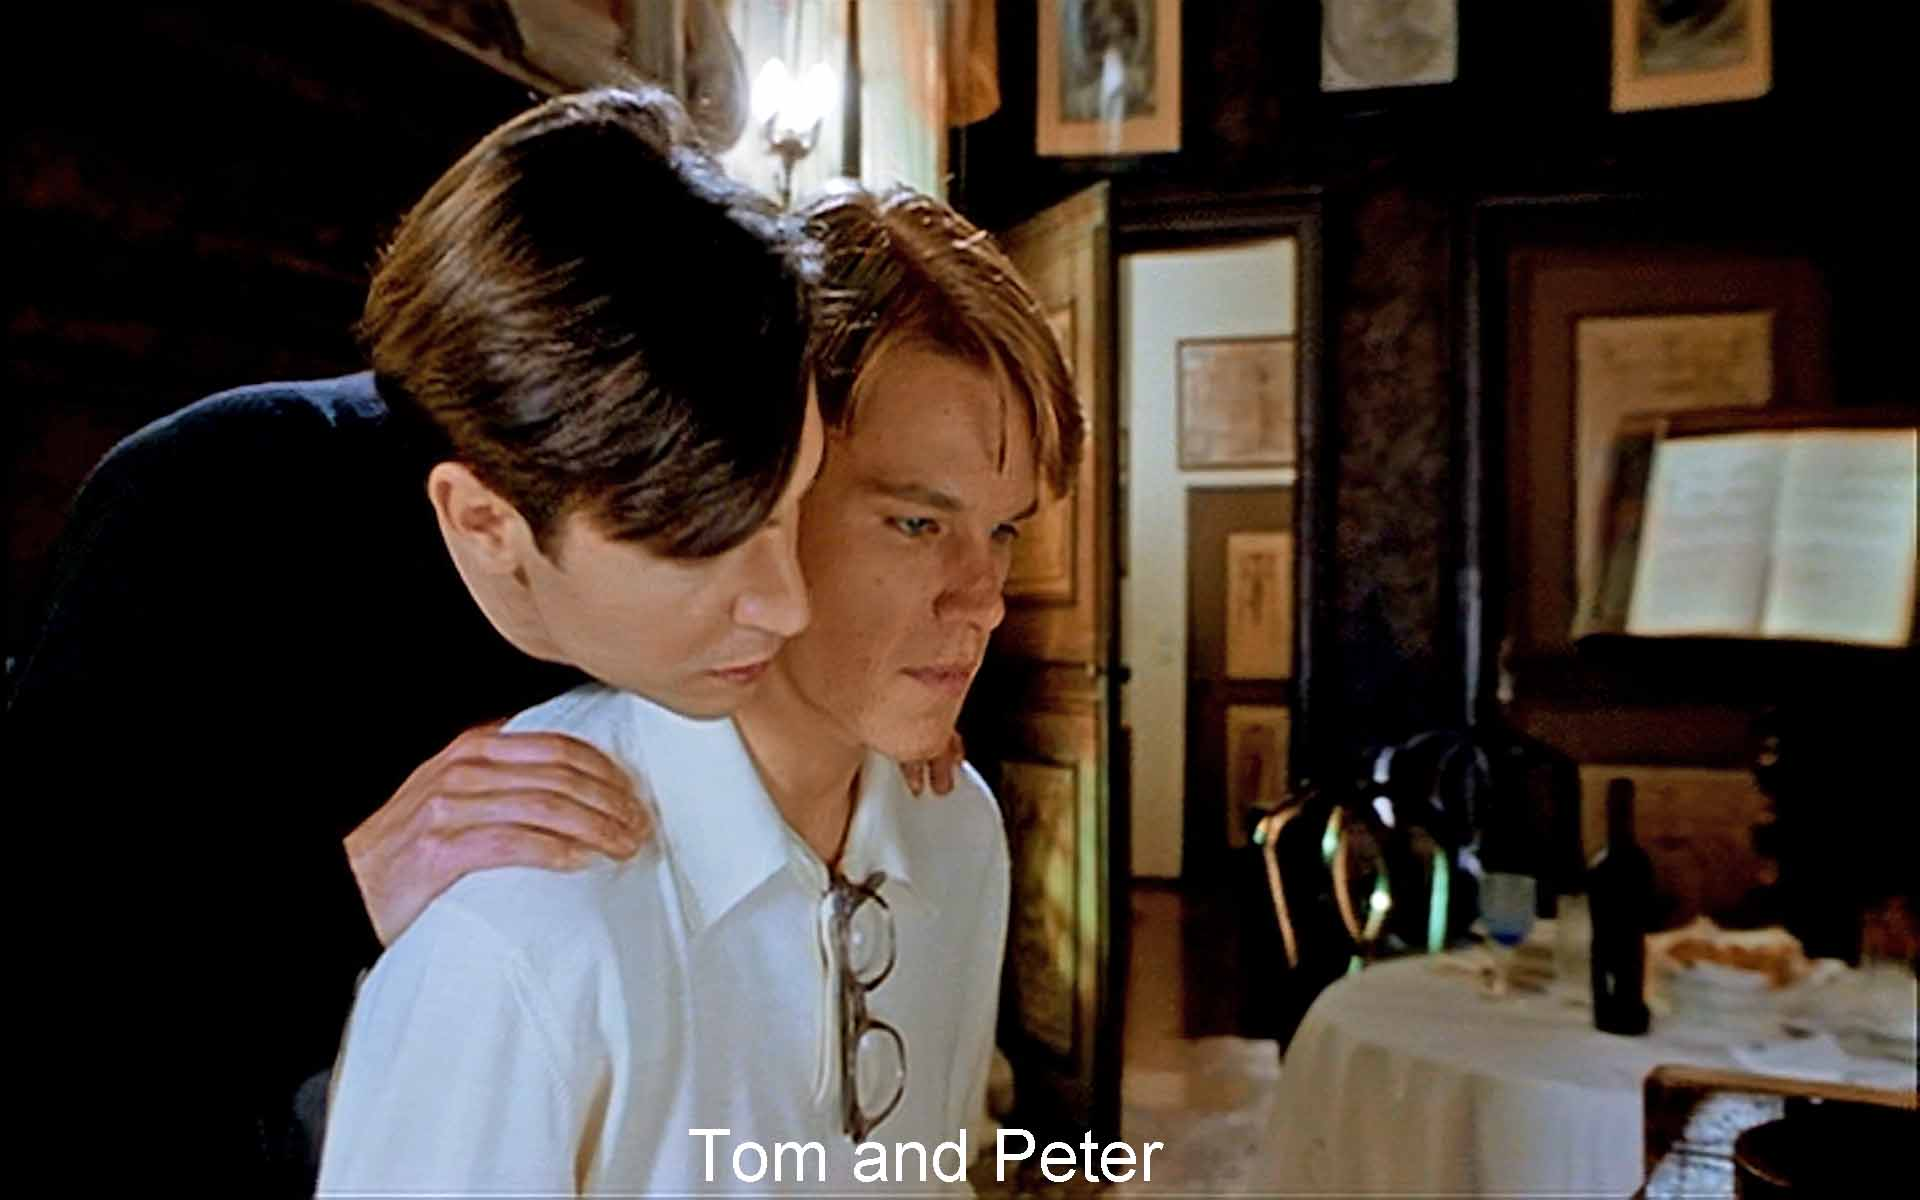 Tom and Peter